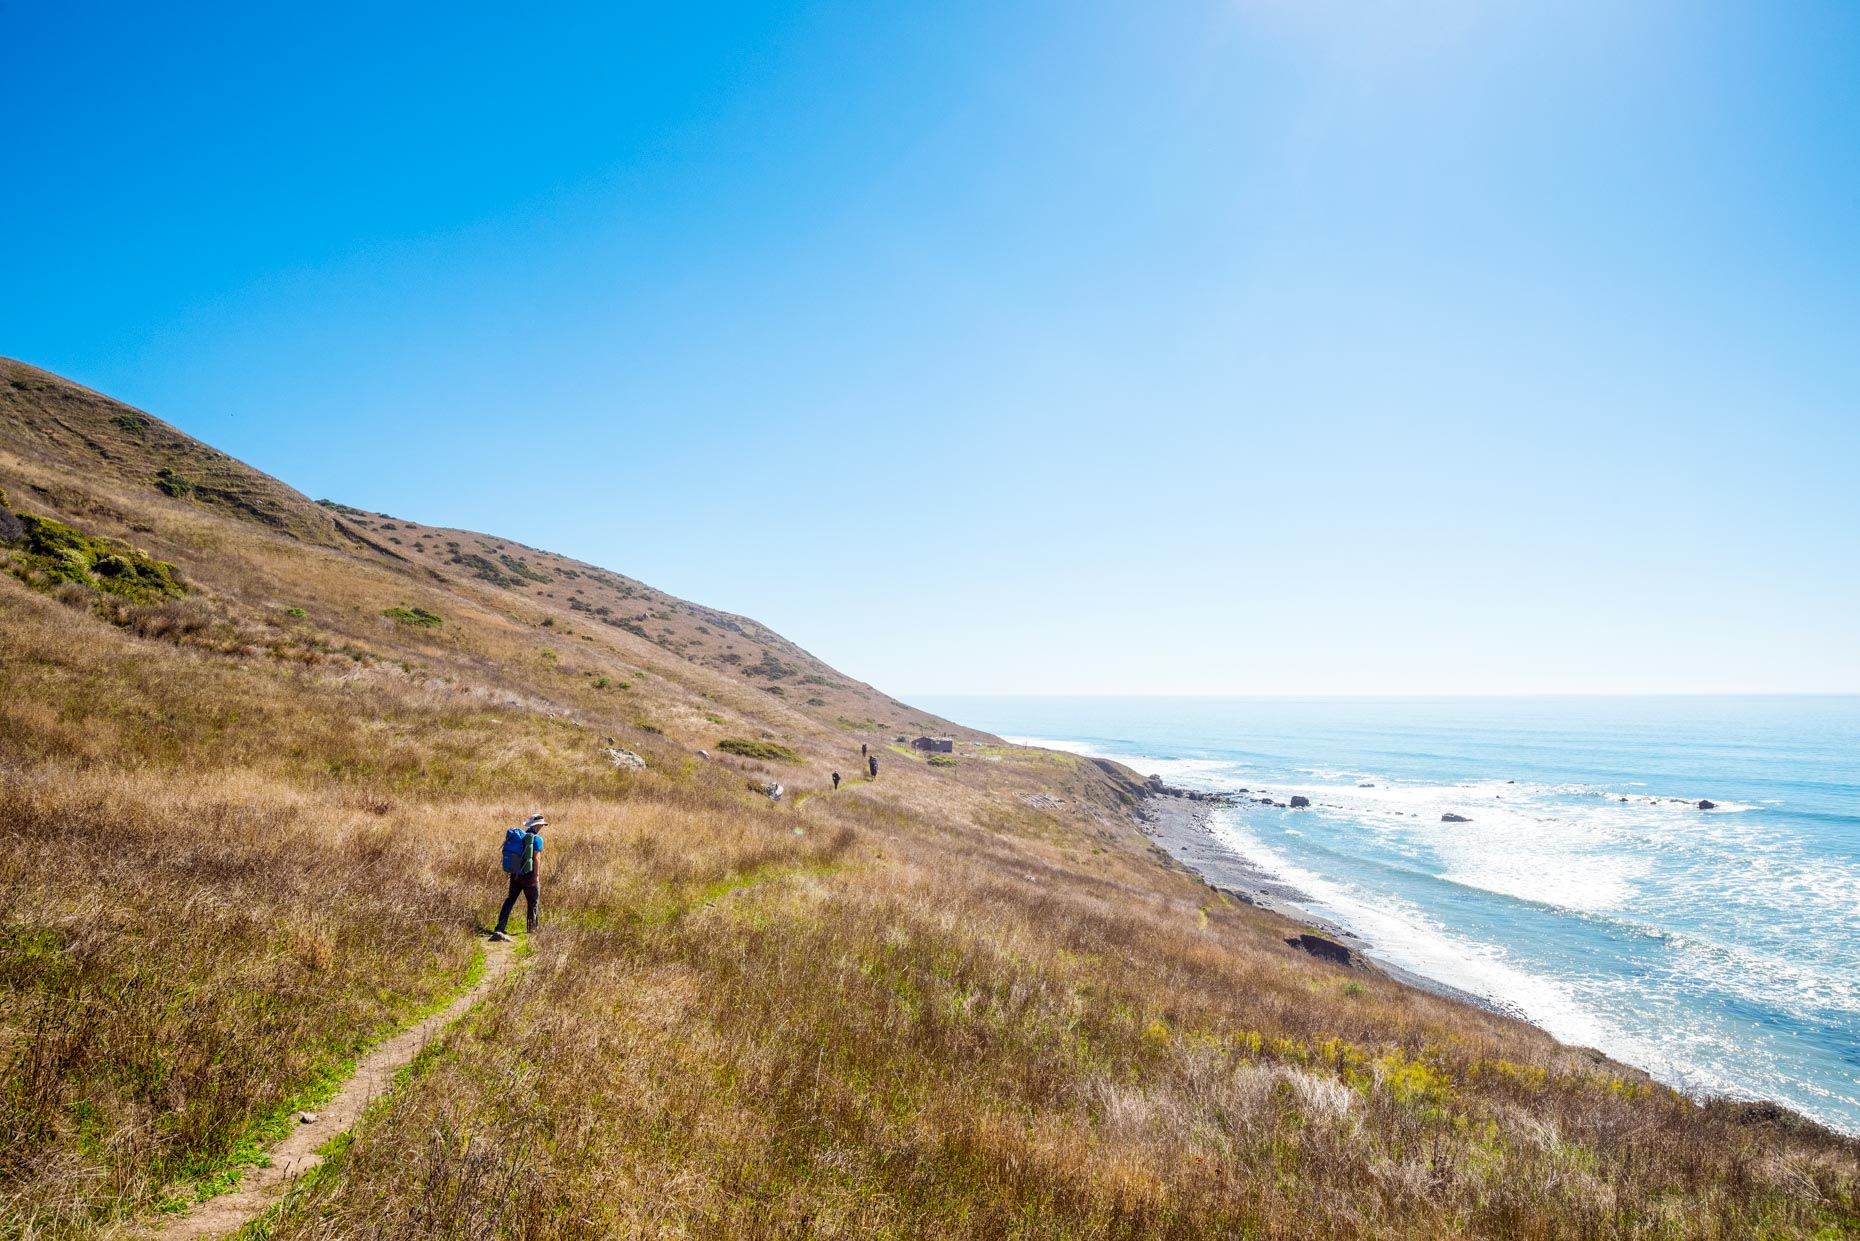 Backpacking the Lost Coast Trail, California